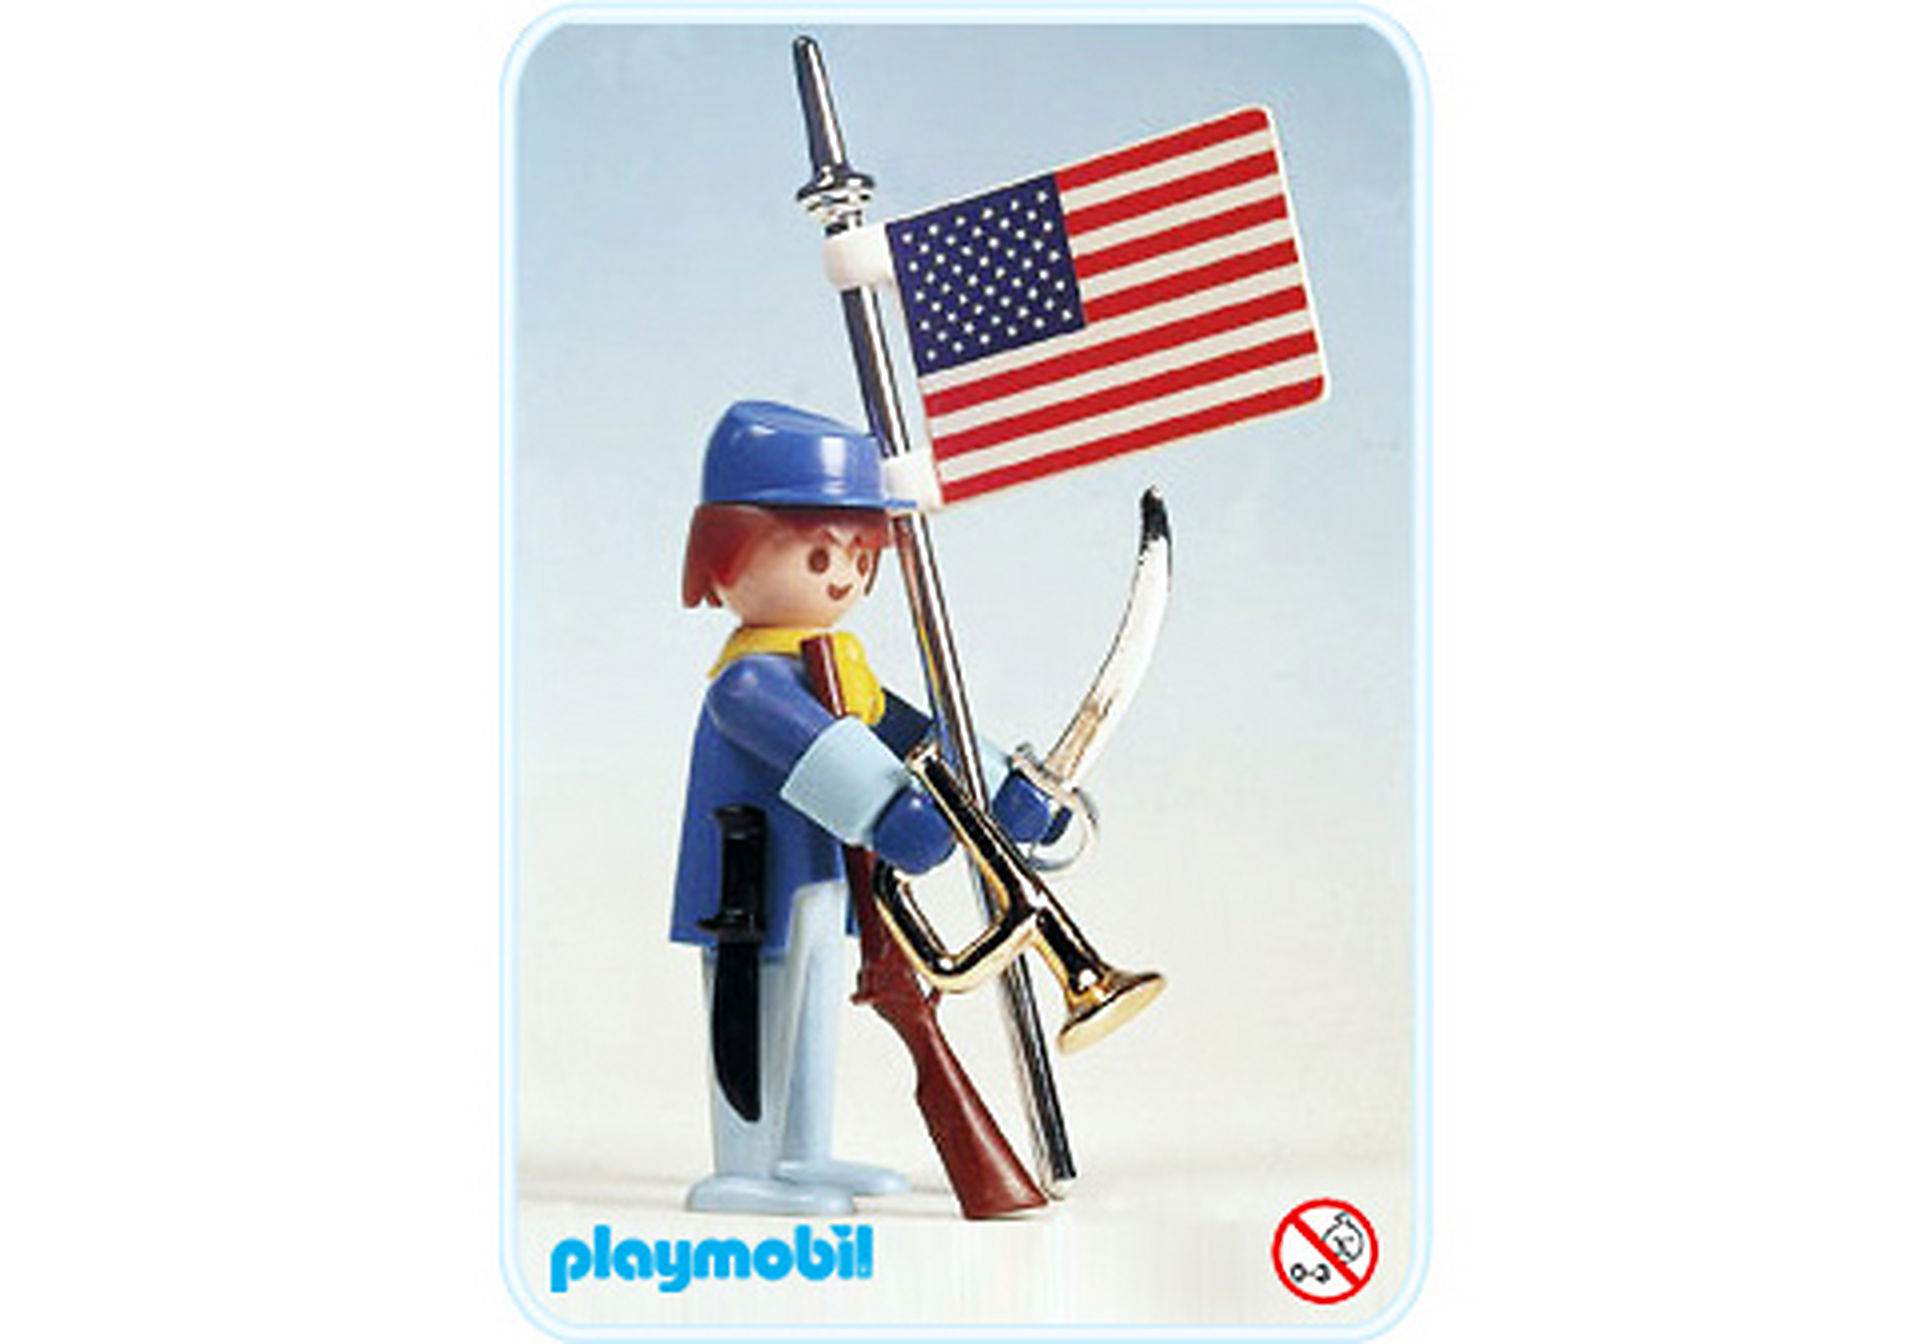 http://media.playmobil.com/i/playmobil/3354-A_product_detail/US-Kavallerist/Sternenbanner